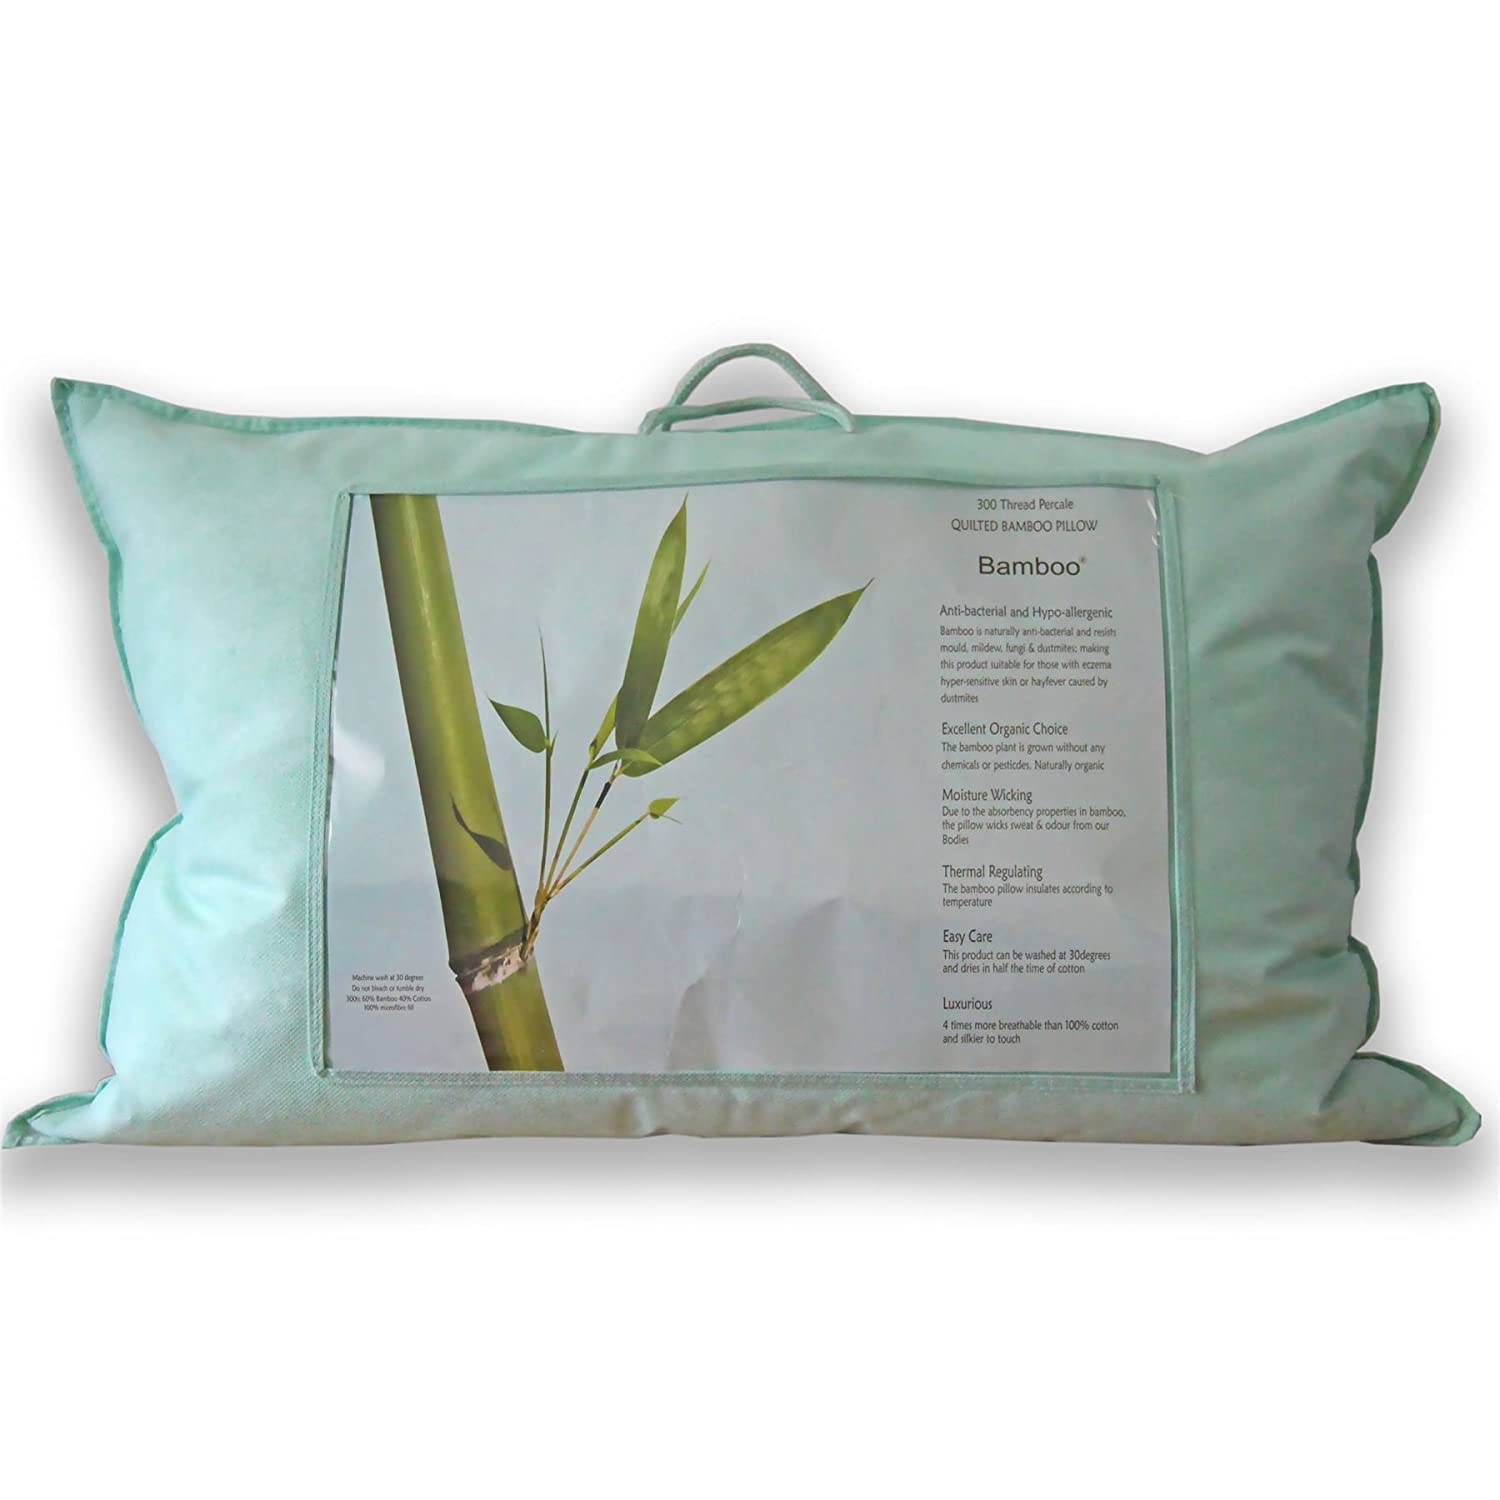 visco in best case elastic choice pillow foam derived coop improved removable rayon design with goods shredded adjustable reviews made perfect memory from top cover queen bamboo viscose home usa